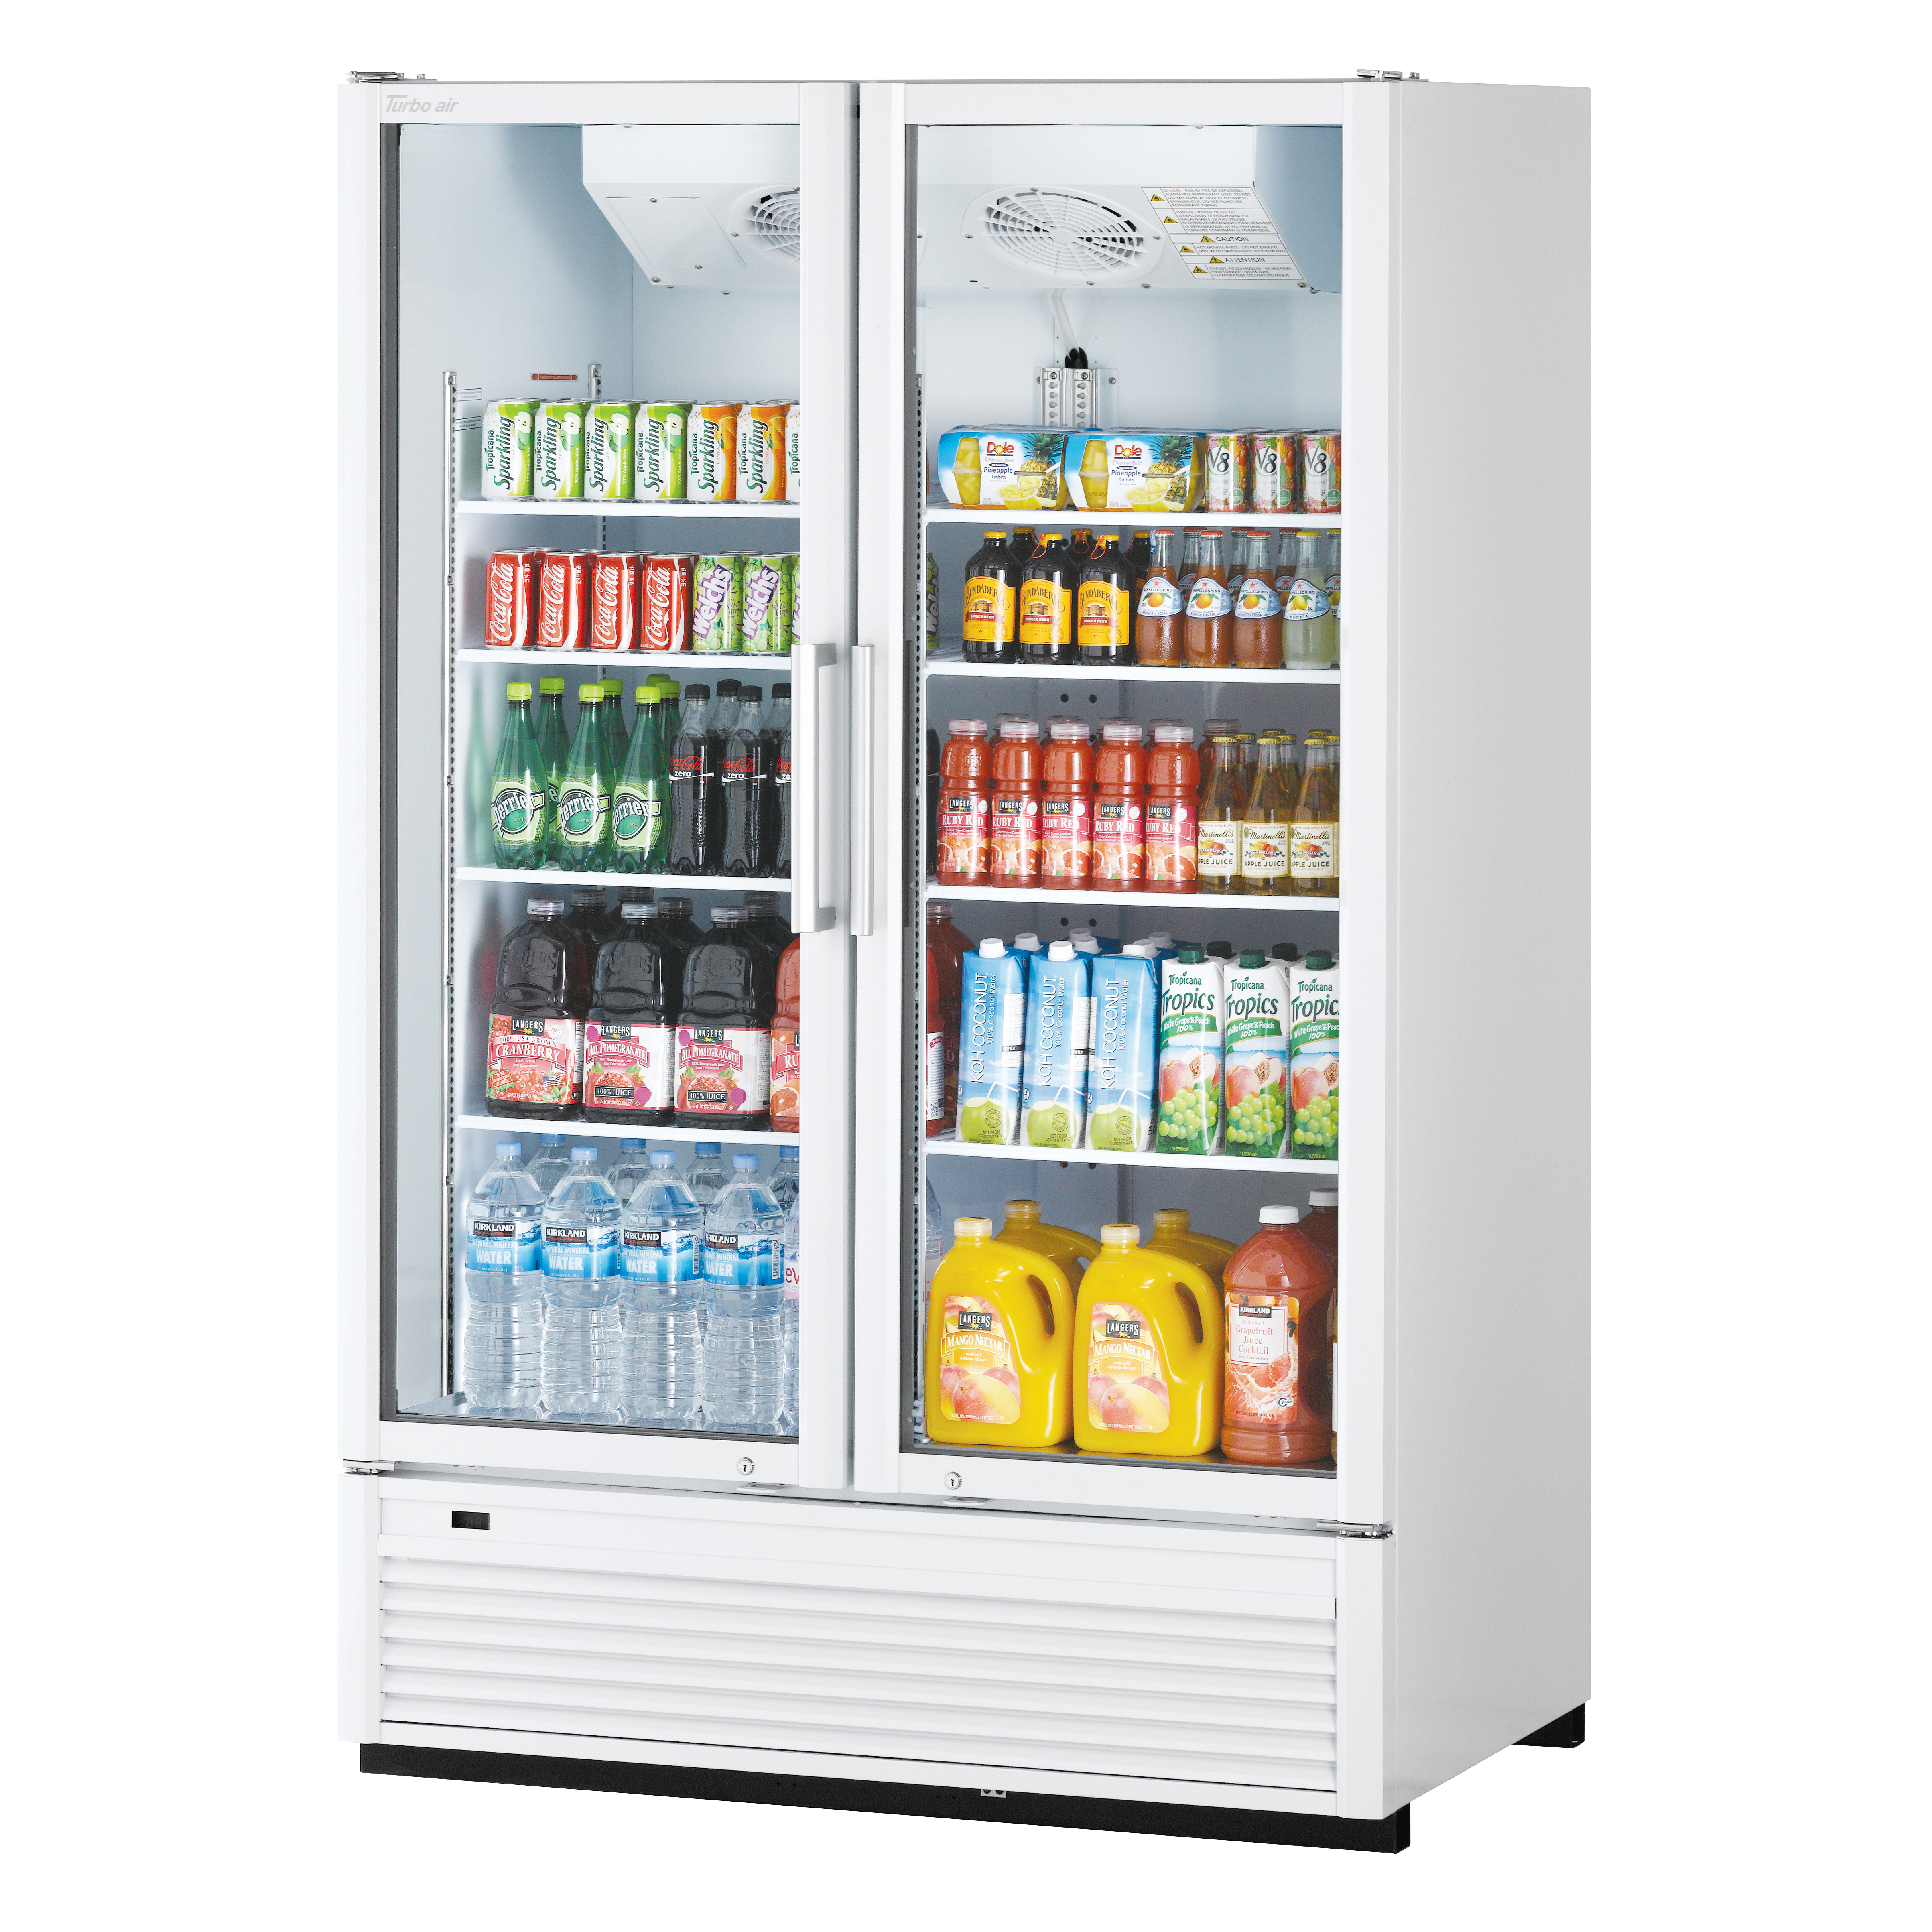 Turbo Air TGM-47SDH-N refrigerator, merchandiser